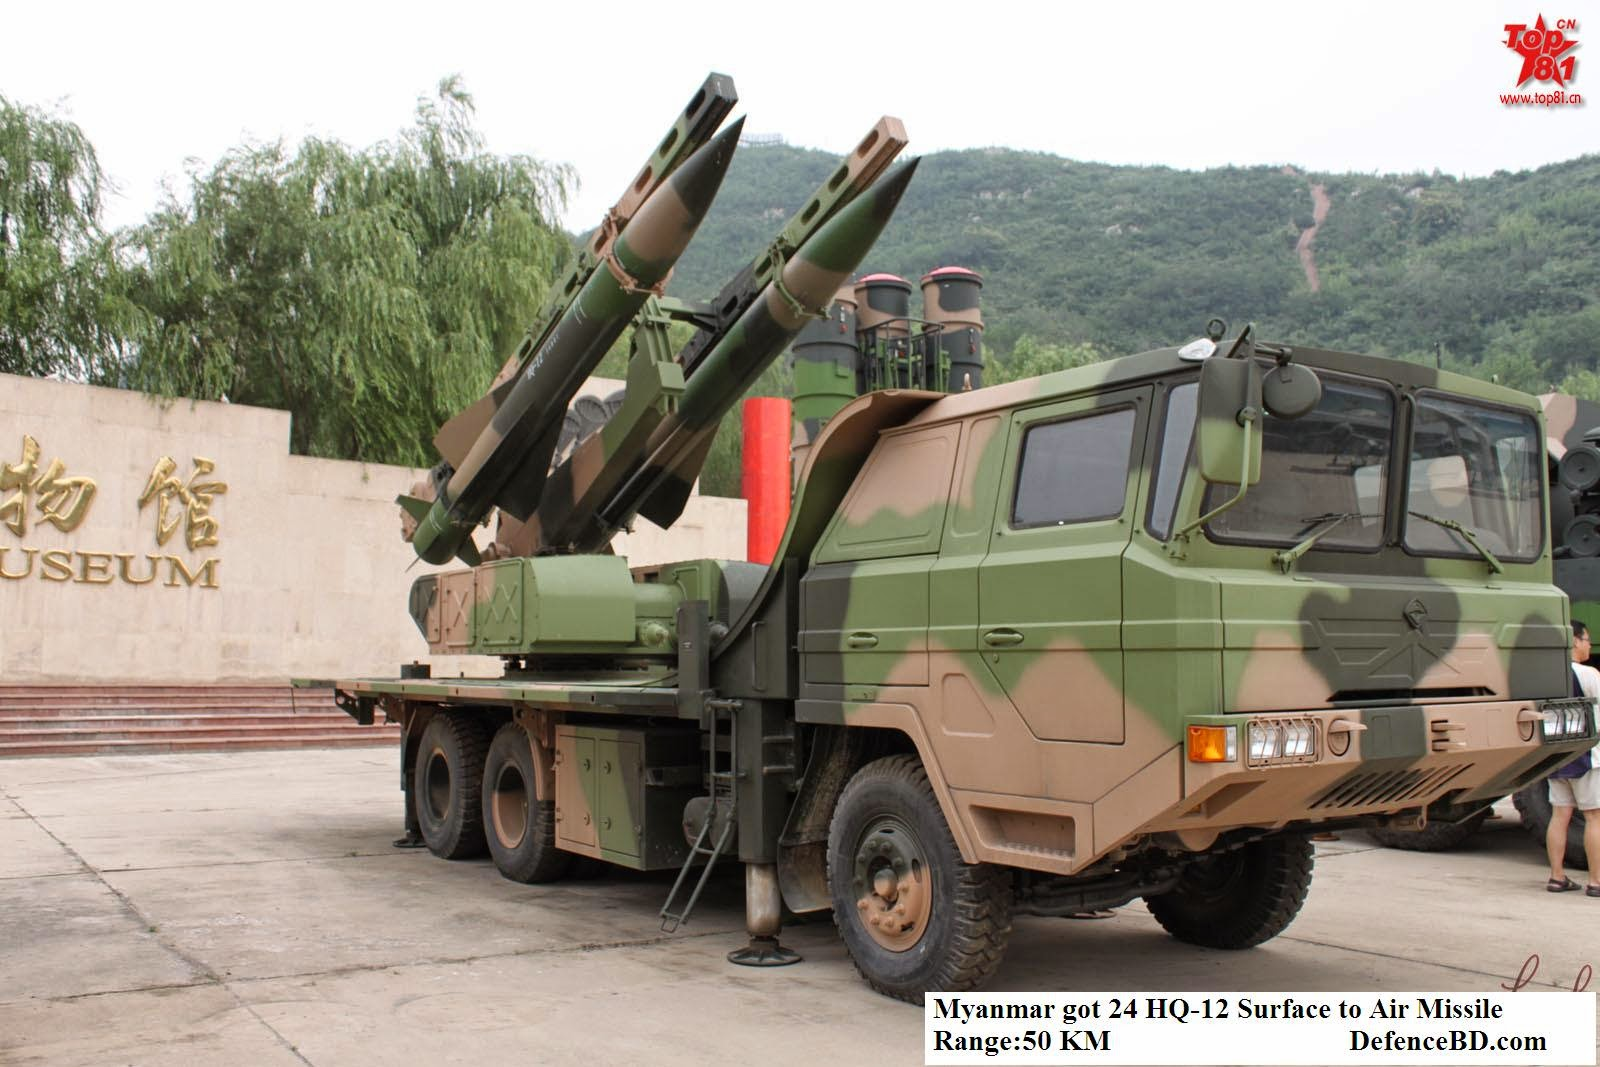 Myanmar Army received HQ-12 Air Defence Weapon